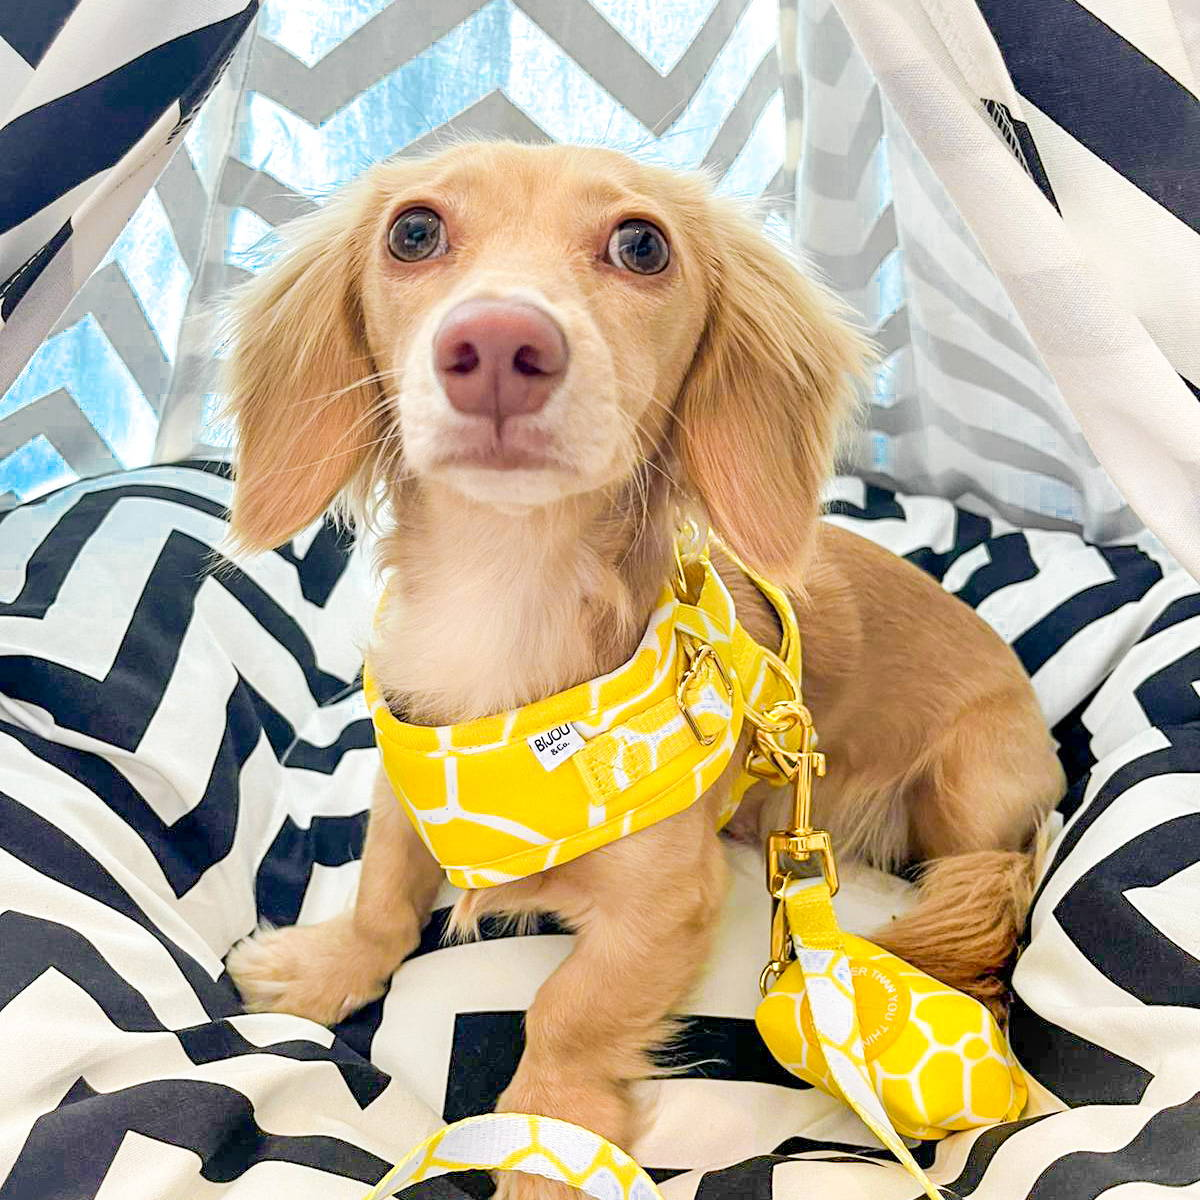 teacup chihuahua wearing a harness